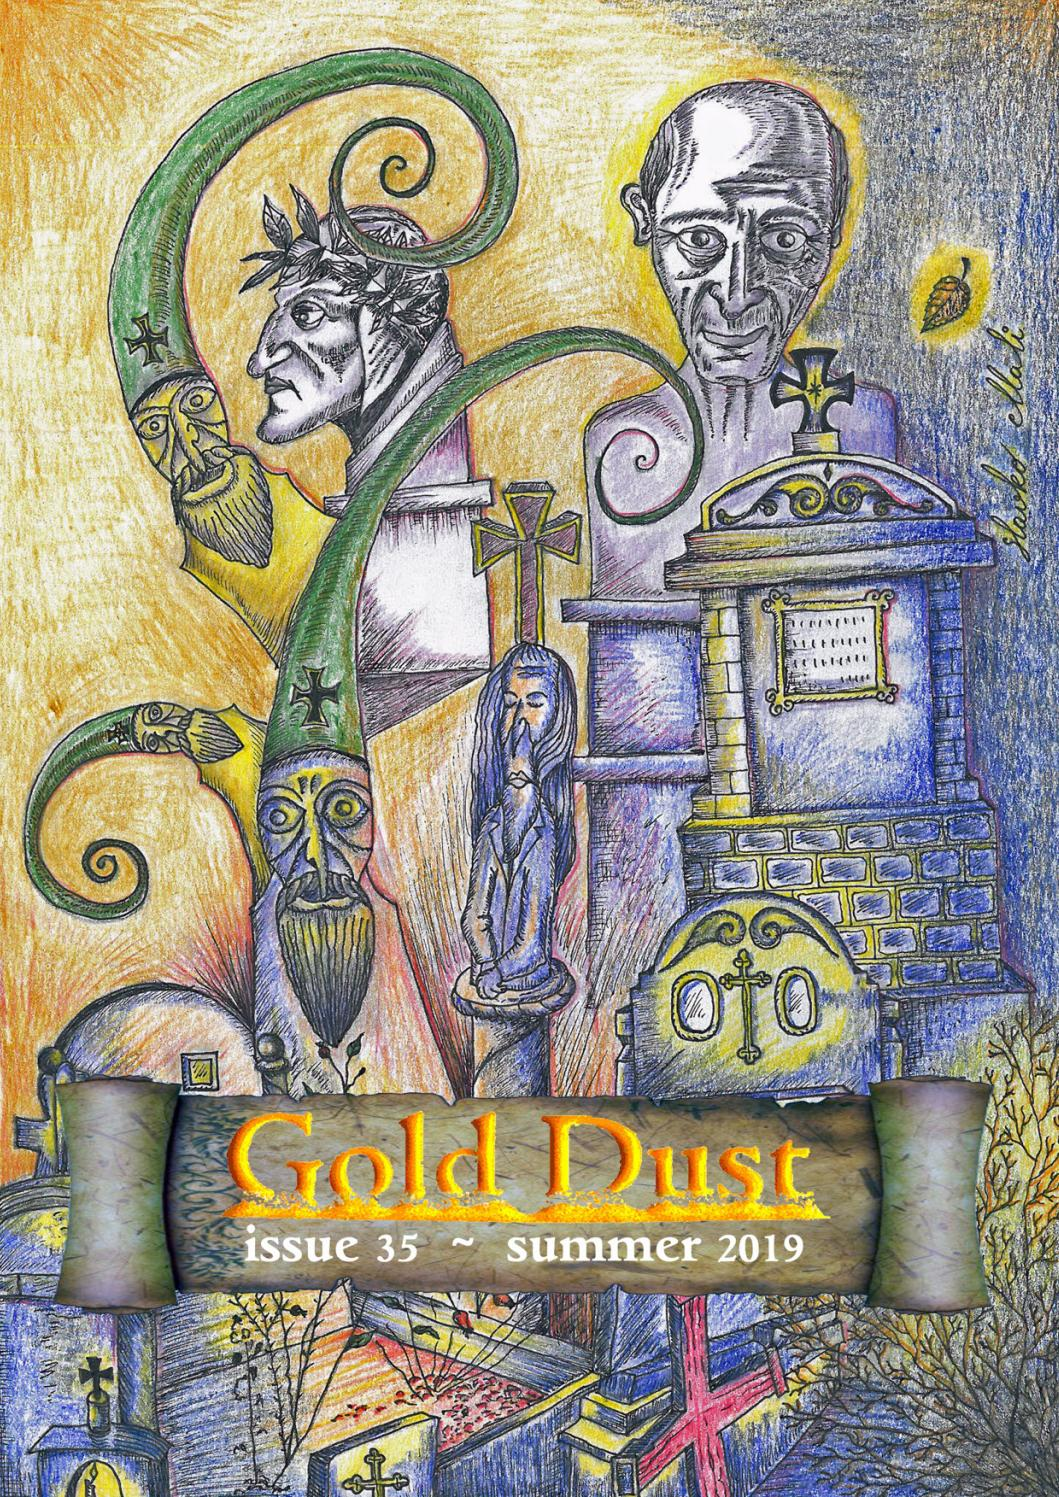 Gold Dust Issue 35 ~ summer 2019 by Gold Dust magazine - issuu